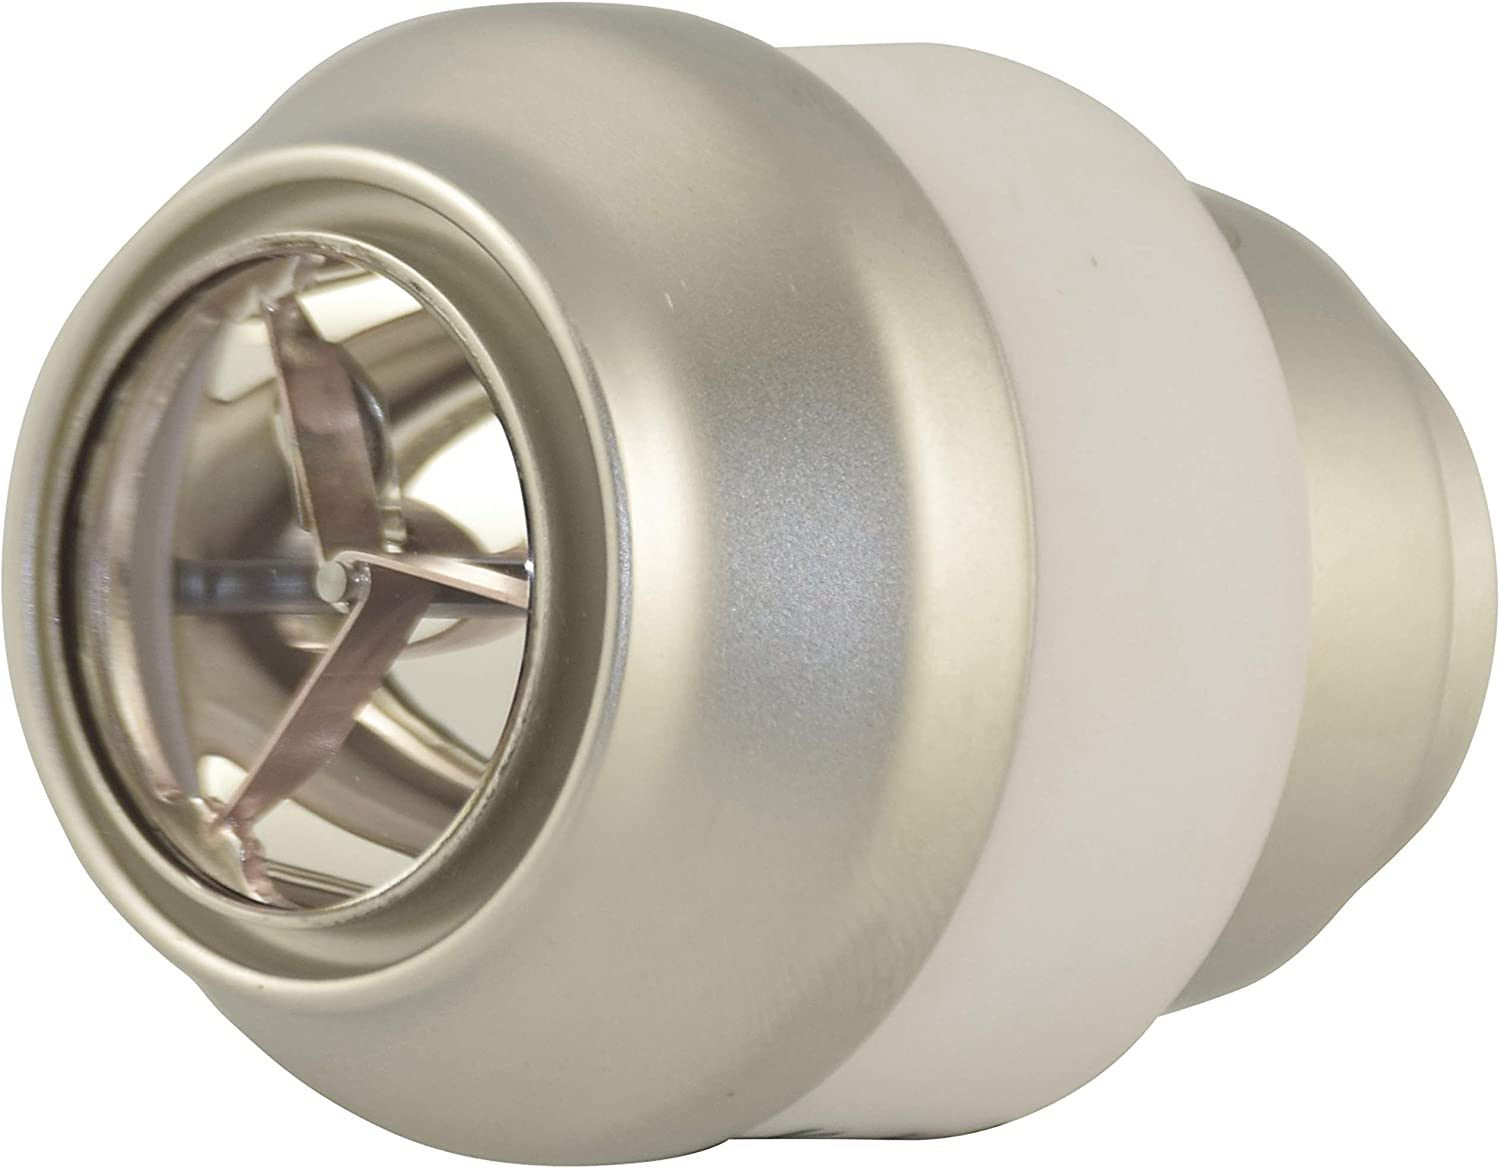 Replacement for Sunoptics Japan's largest assortment Ssx175bf Light Bulb Finally resale start Preci Technical by